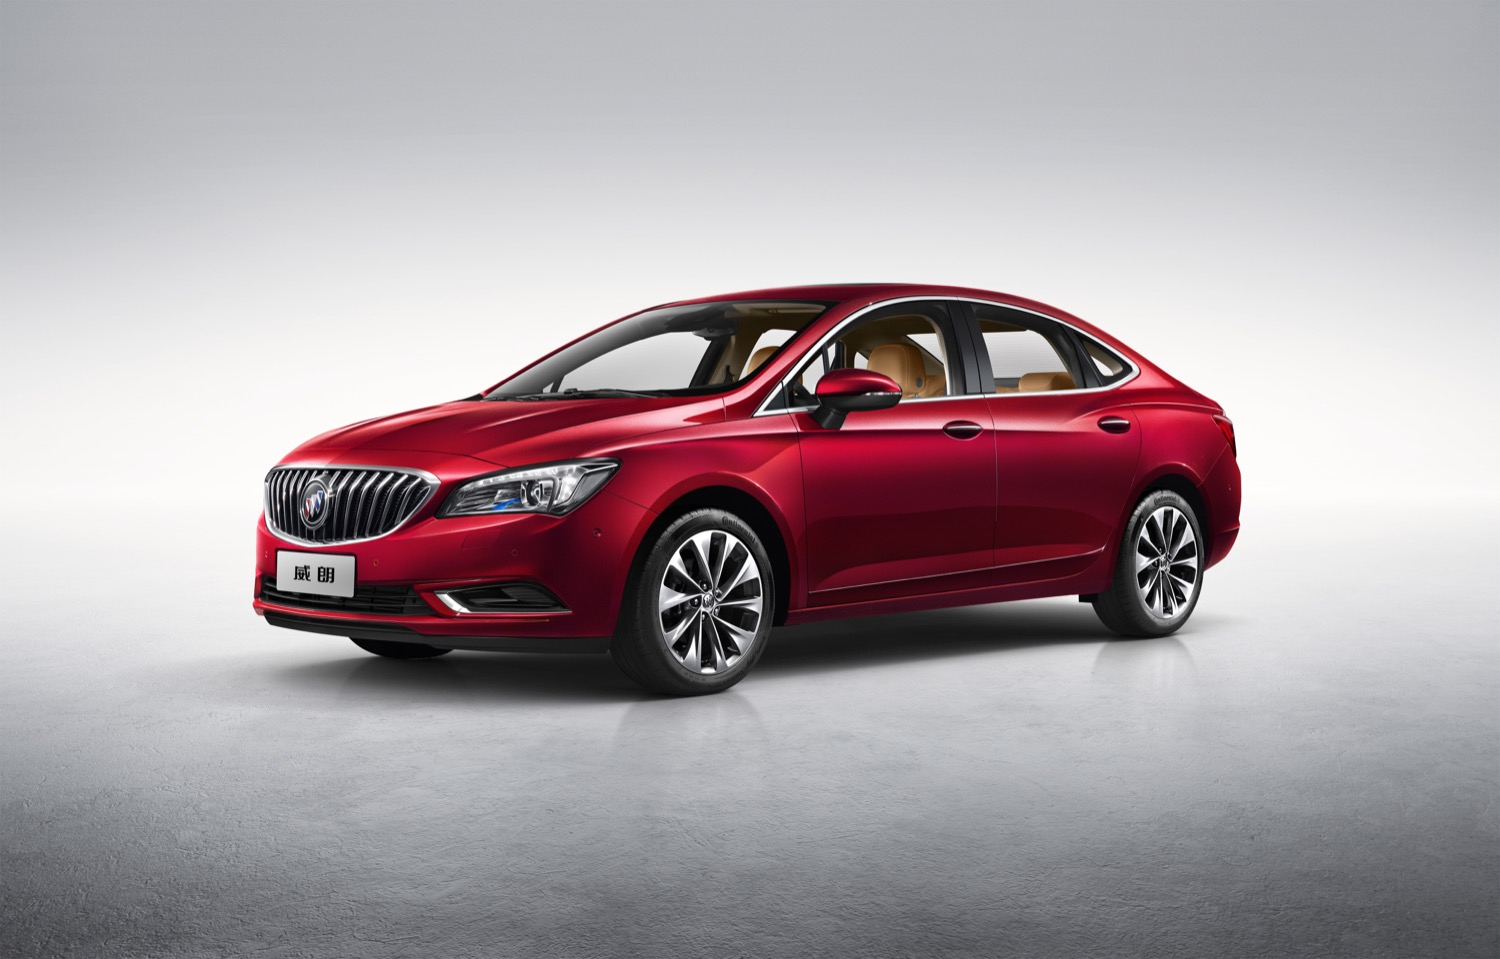 2017 Buick Verano Info, Specs, Pictures, Wiki | Gm Authority New 2022 Buick Verano Recalls, Specs, Oil Type